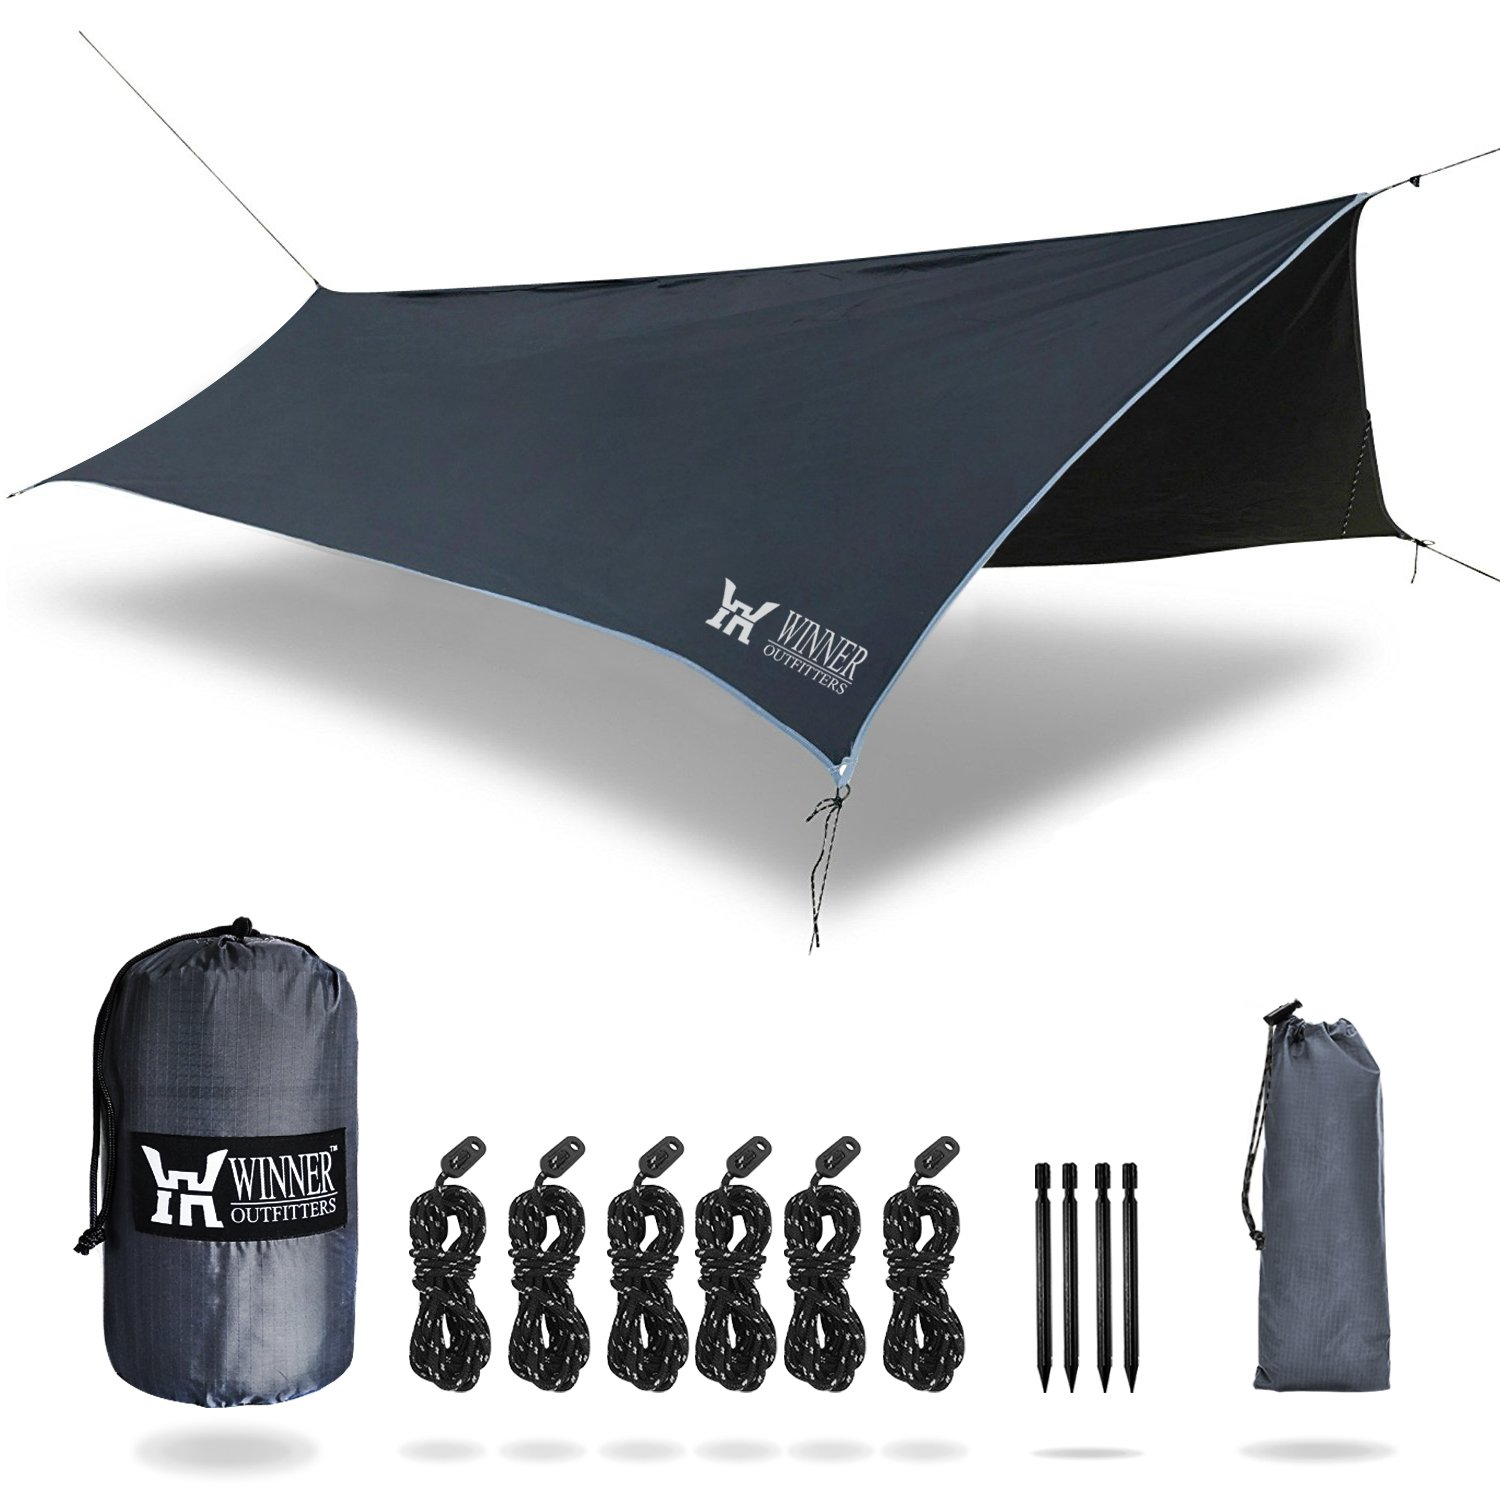 WINNER OUTFITTERS Hammock Rain Fly,Ripstop Nylon Waterproof Tent Tarp Shelter for Camping,Backpacking,Hiking in Sunshade,Moisture,Rain,Lightweight&Portable,Easy Set Up(HEX) by WINNER OUTFITTERS